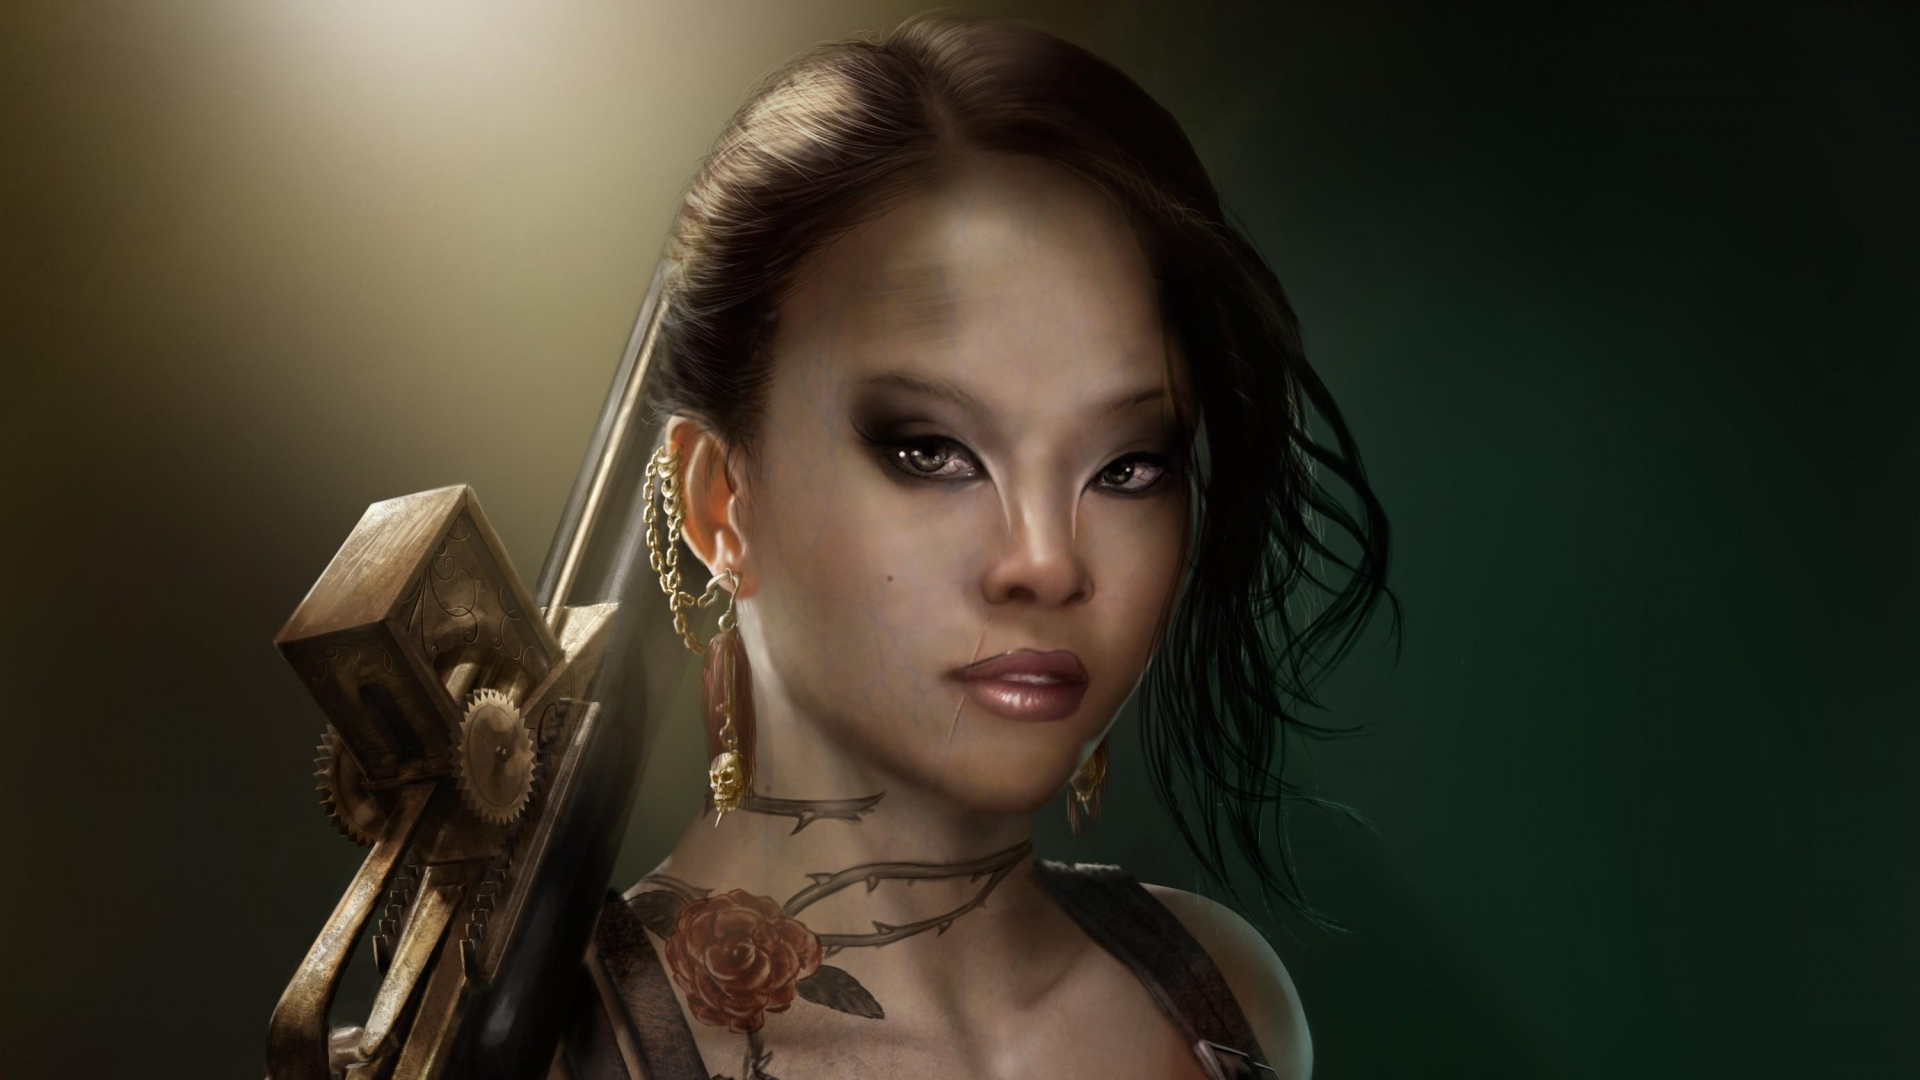 girl-makeup-tattoos-weapons-1920x1080